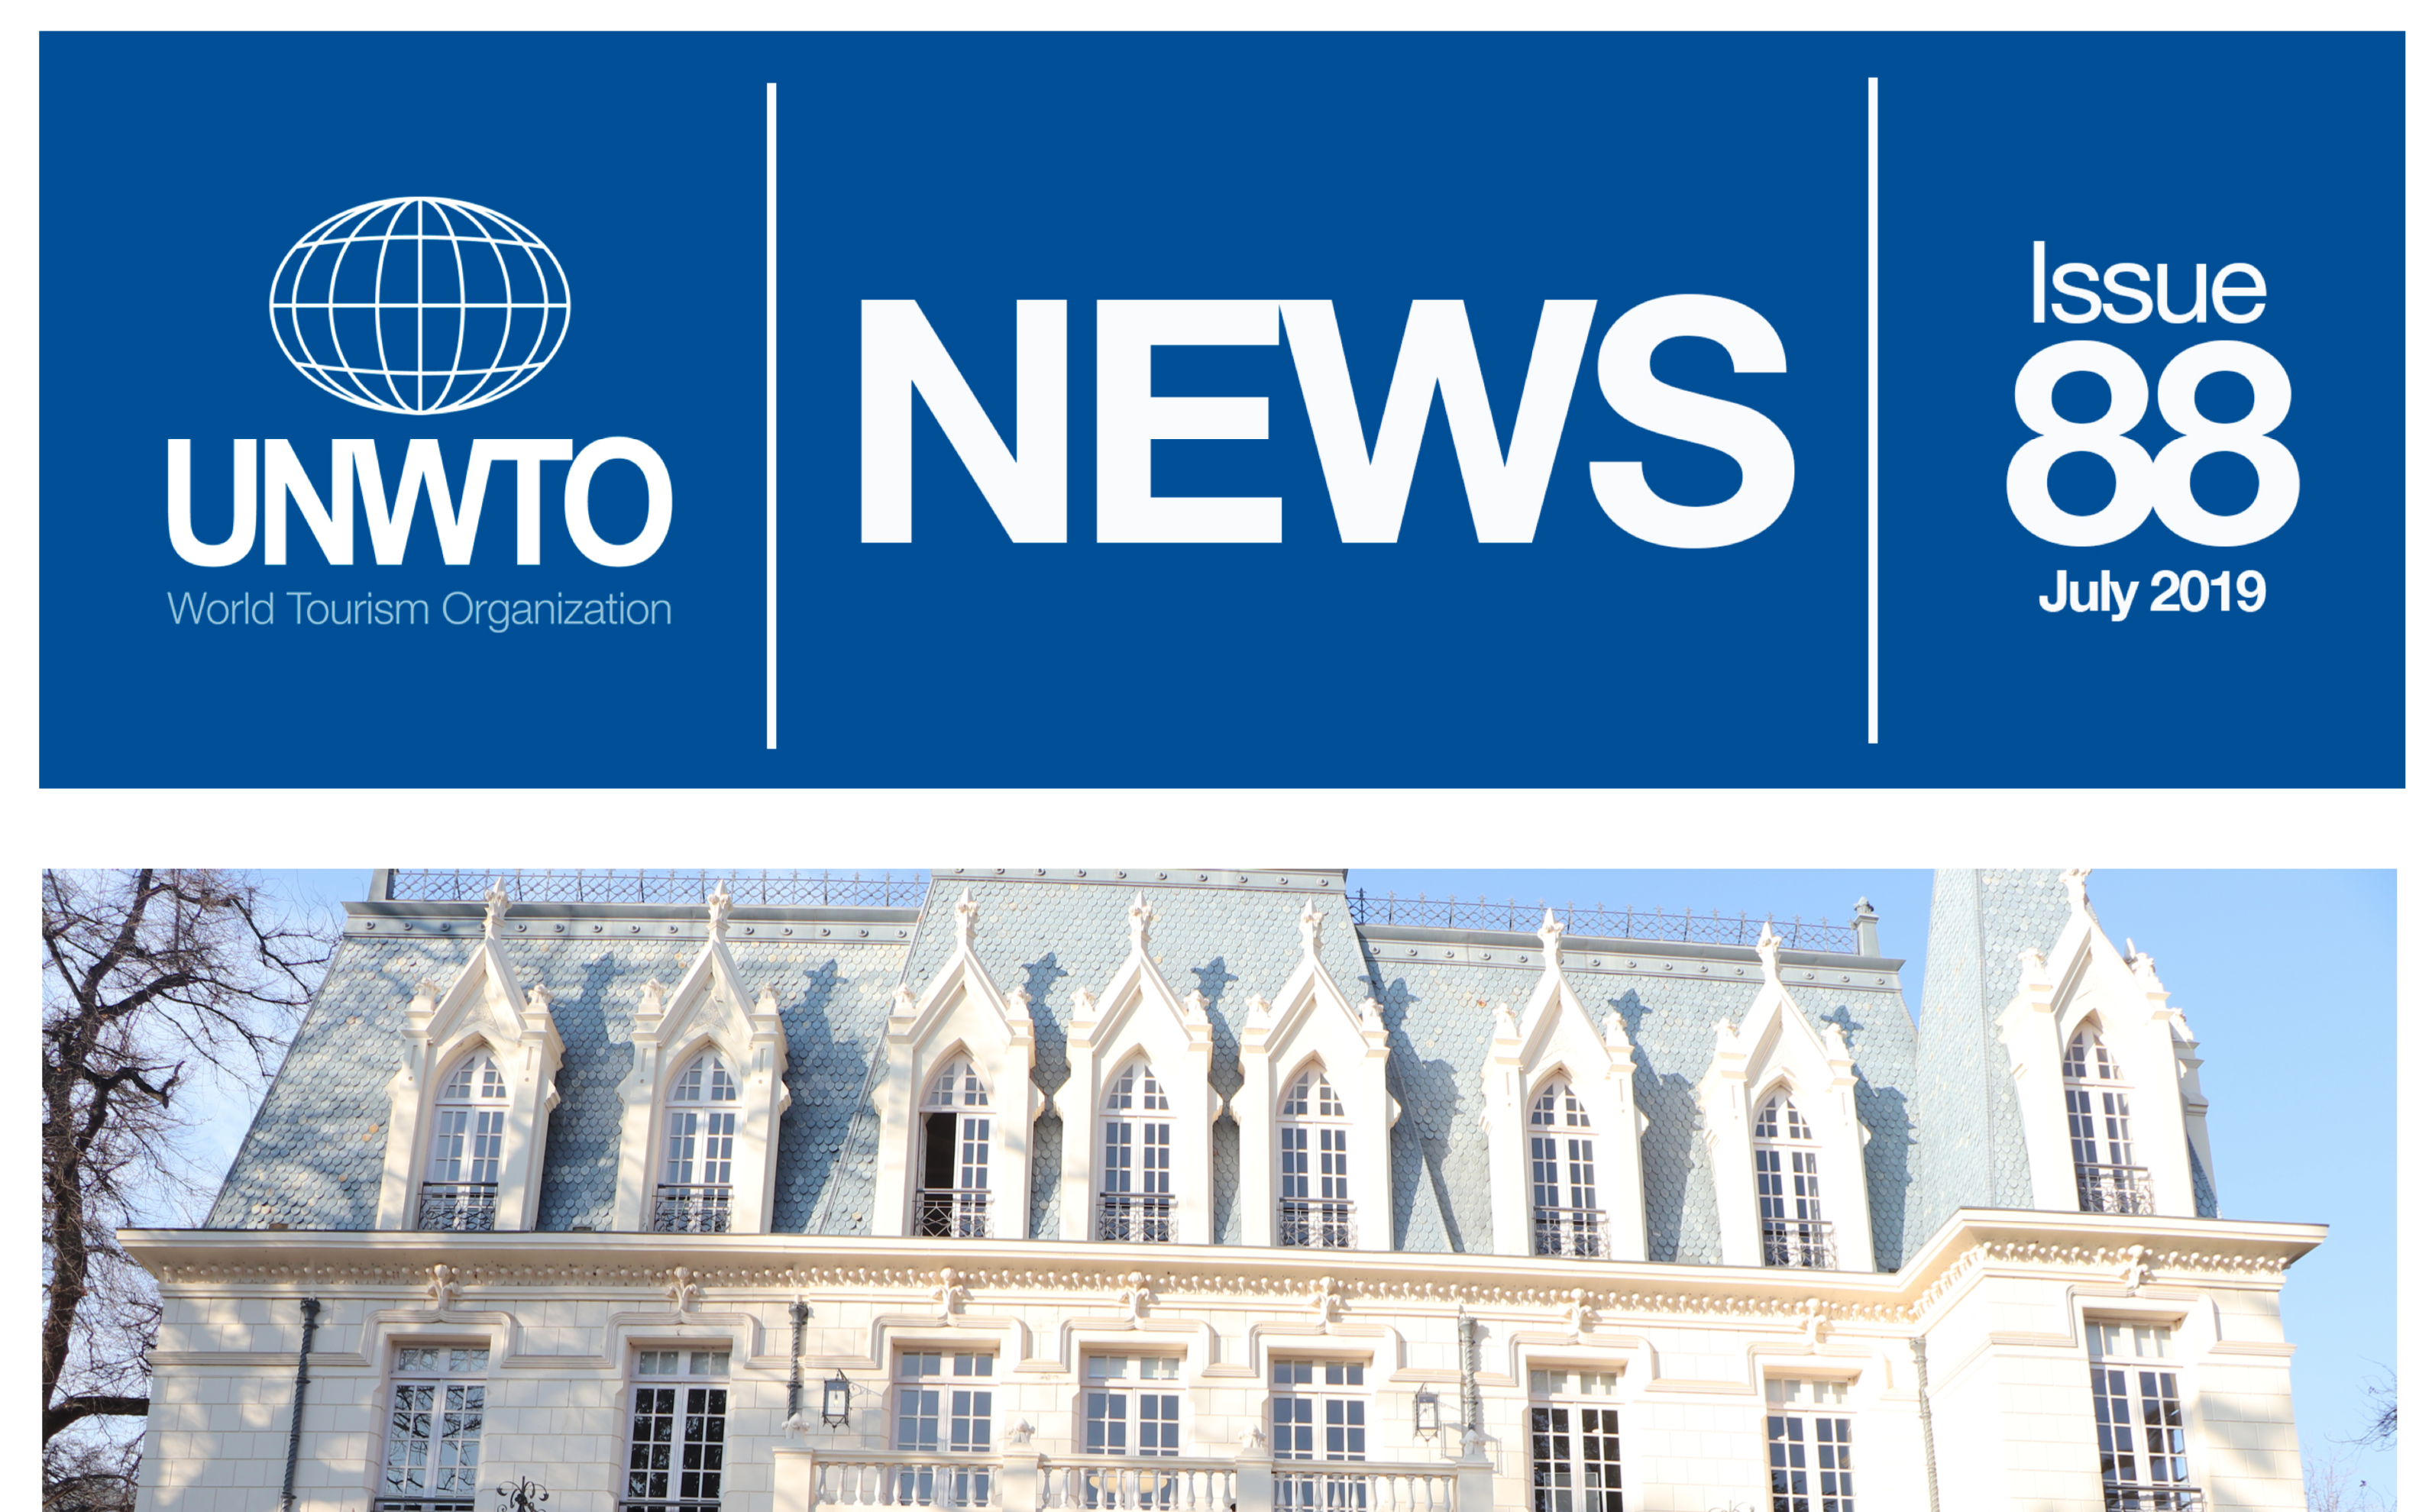 UNWTO July newsletter excites with Tourism innovation